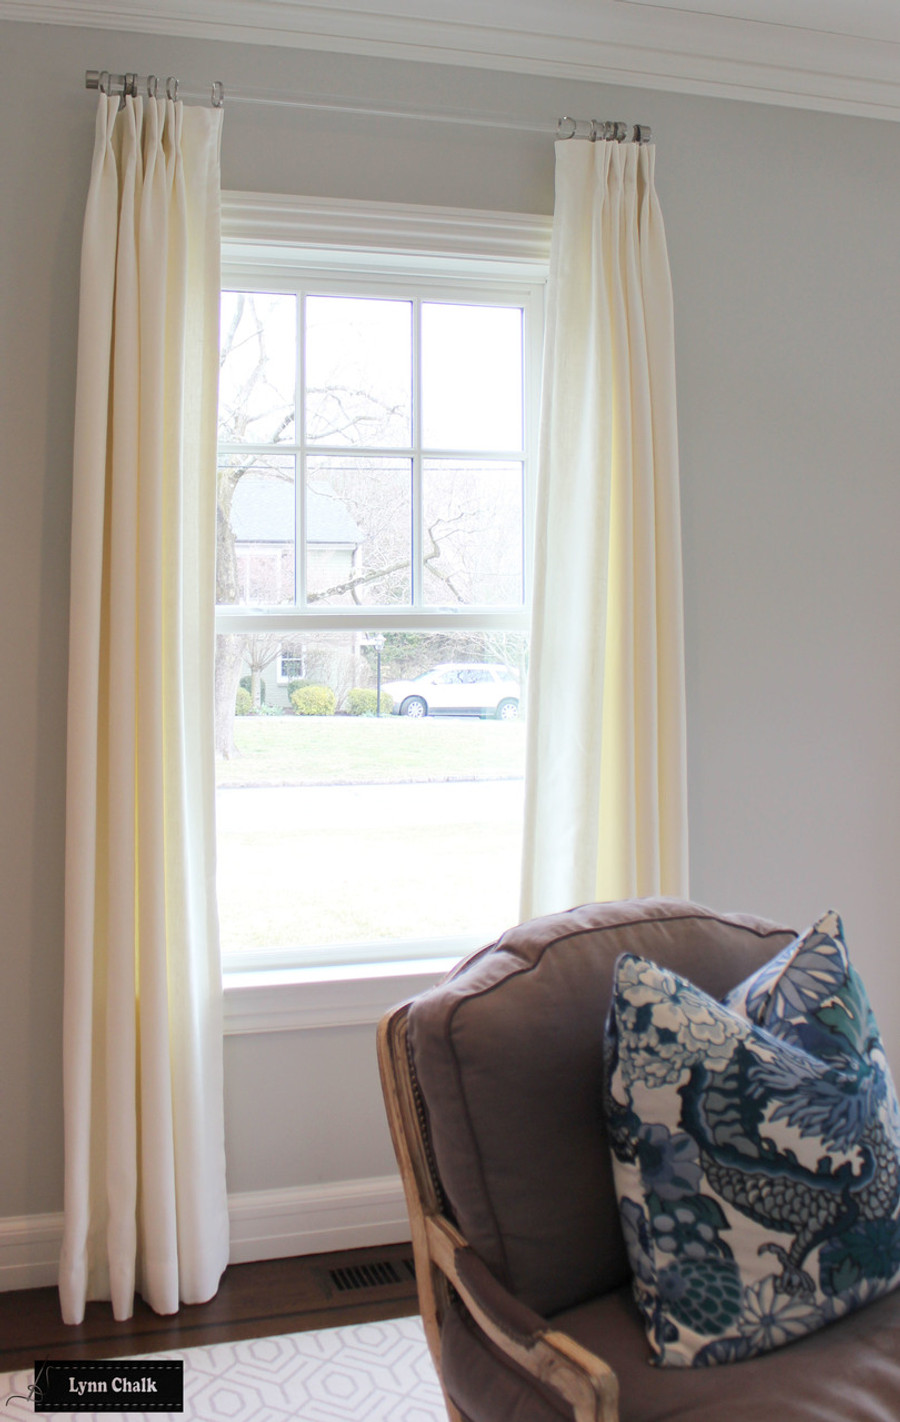 Drapes in Kravet Dublin Linen in Bleach.